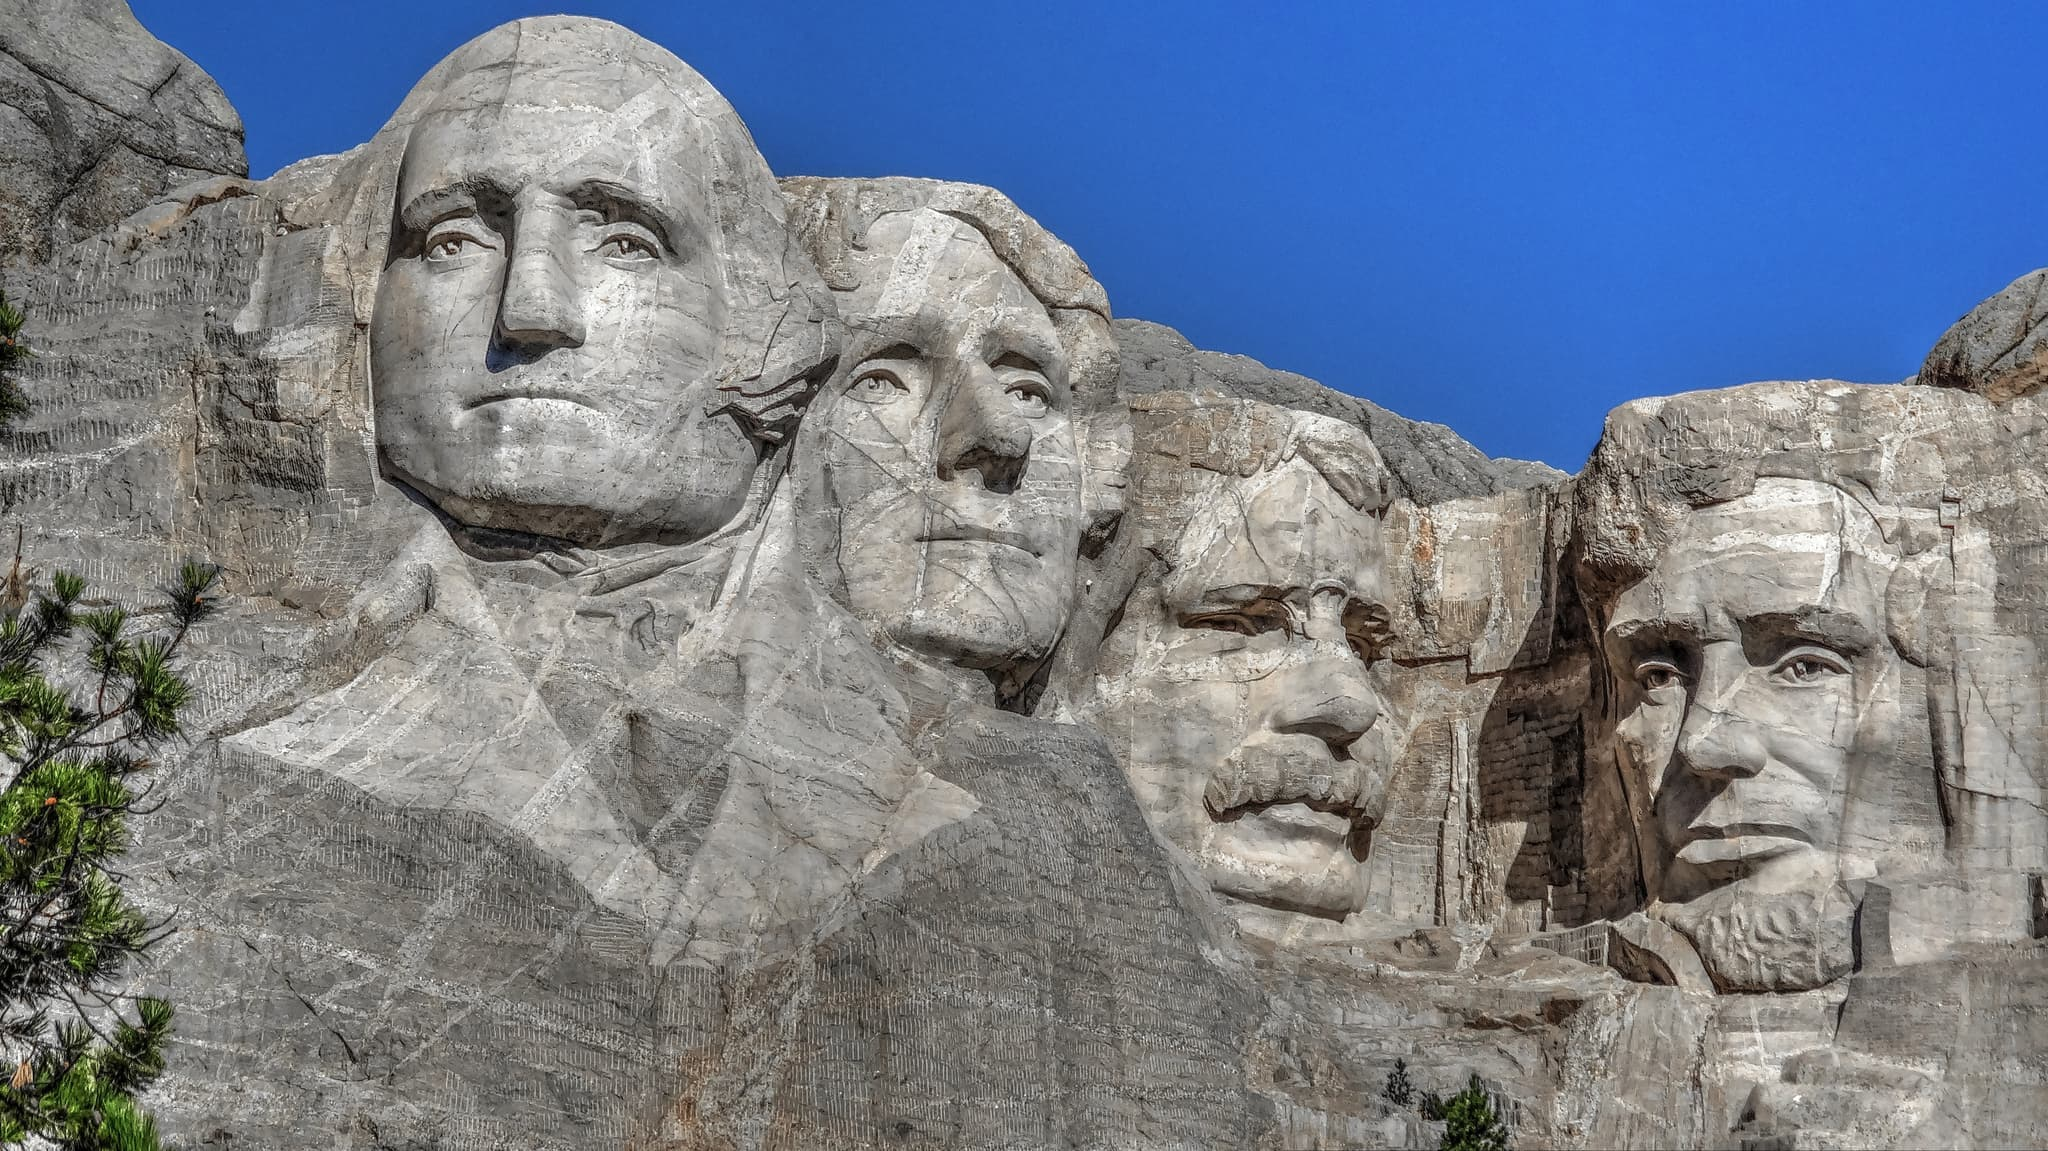 Mount Rushmore HD Wallpaper for Desktop